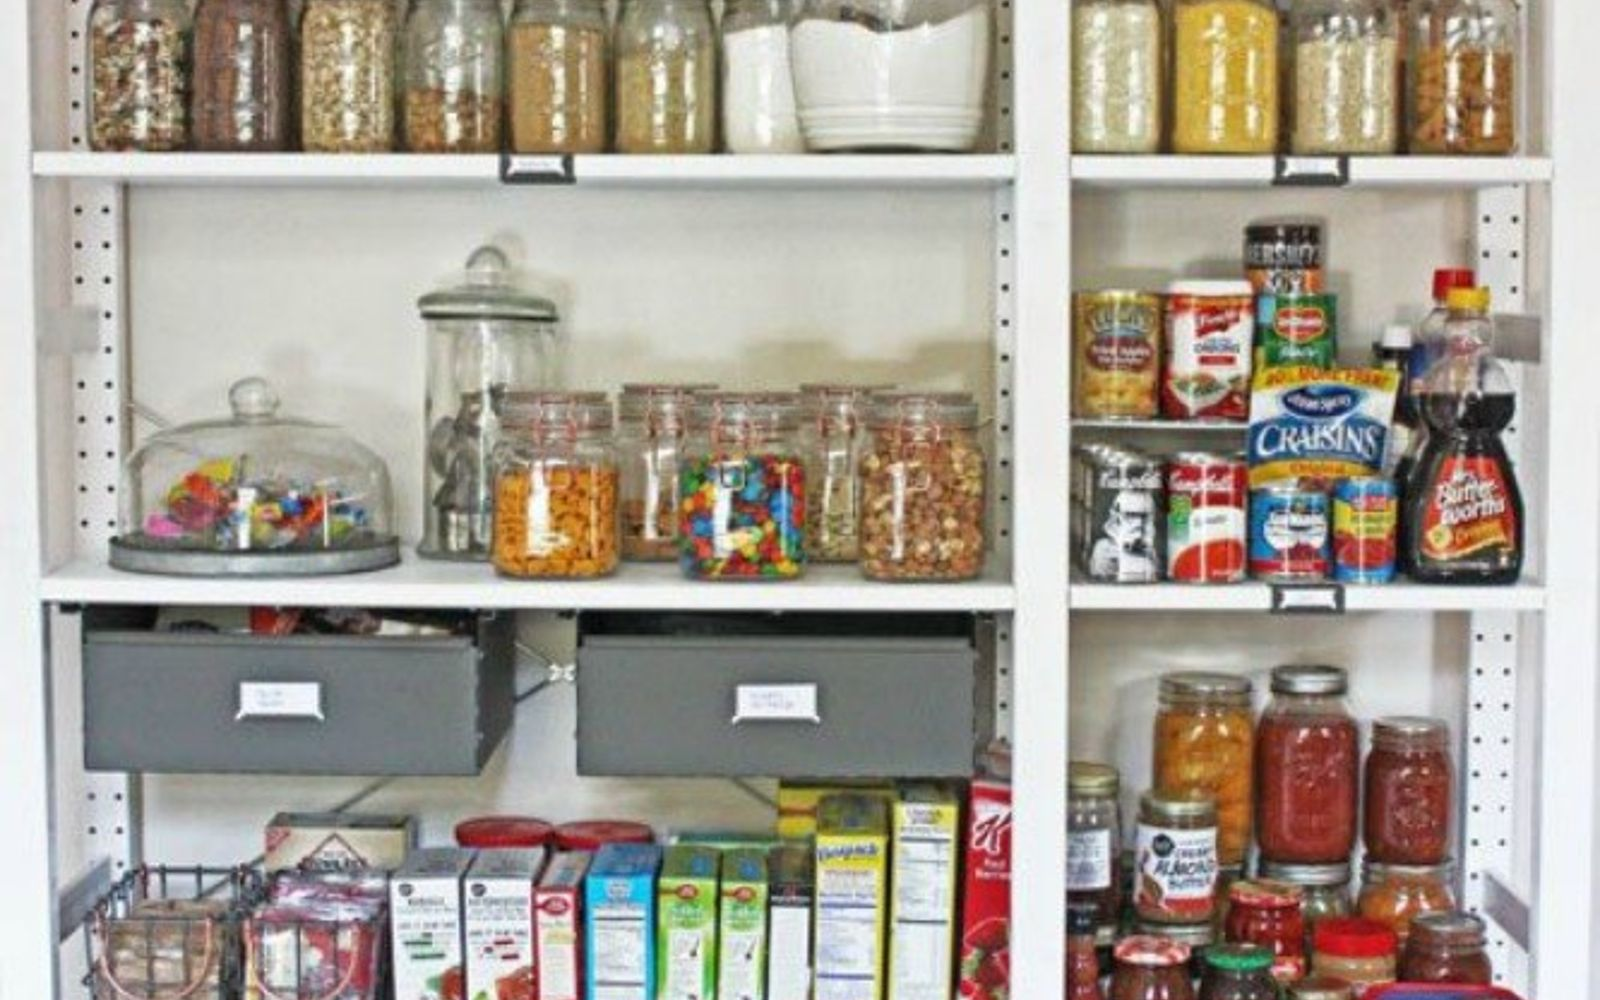 s add more pantry space with these brilliant hacks, closet, Get open pantry shelving with IKEA shelves